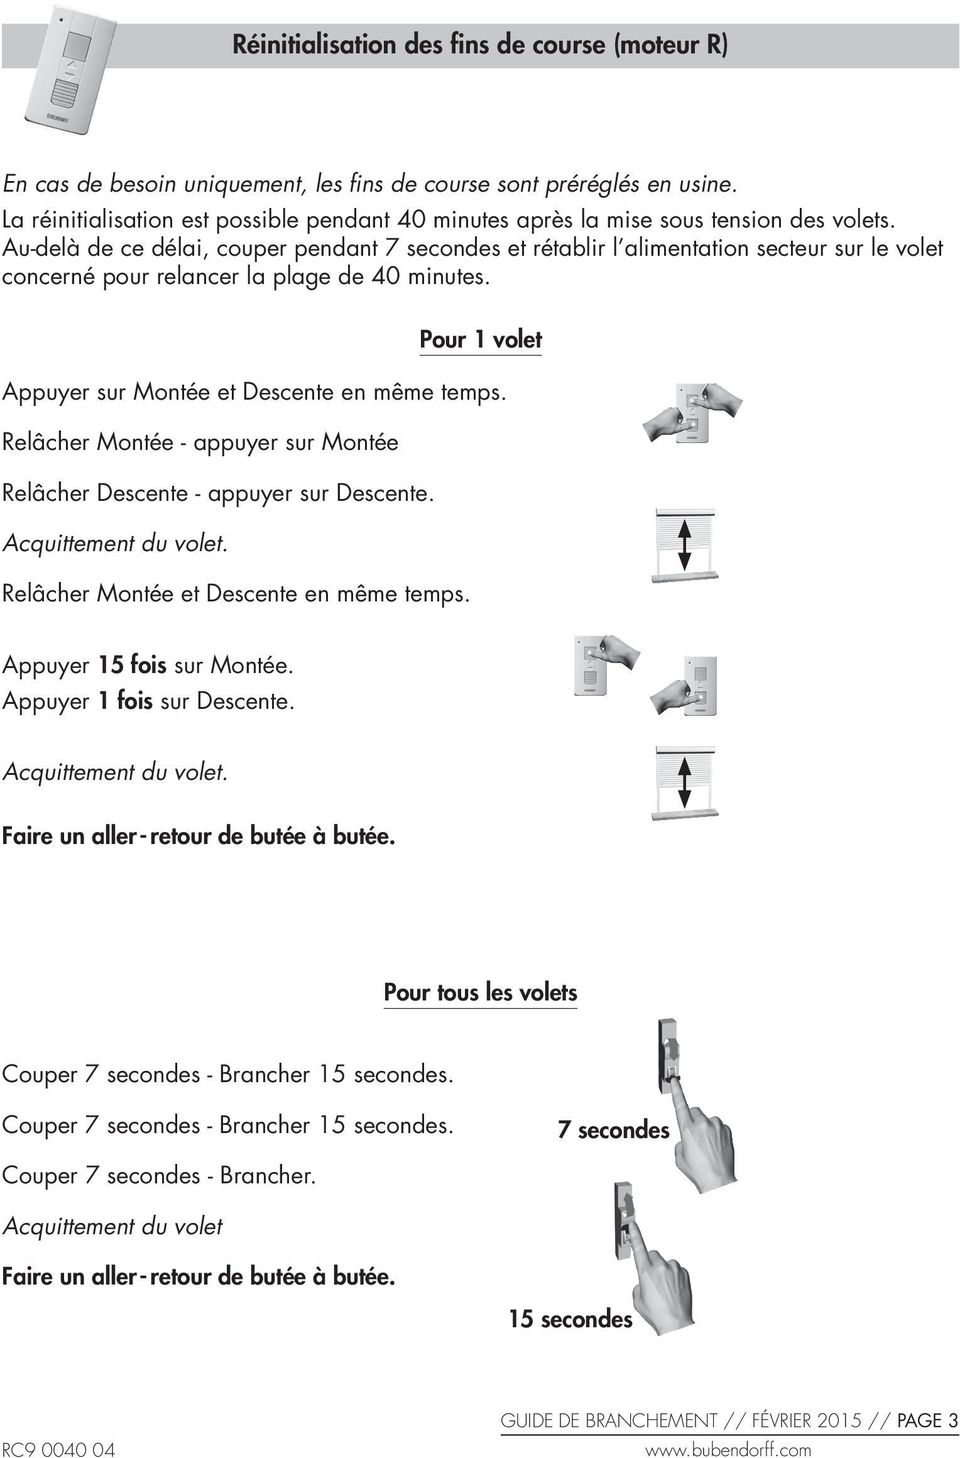 Guide De Branchement Pdf Telechargement Gratuit